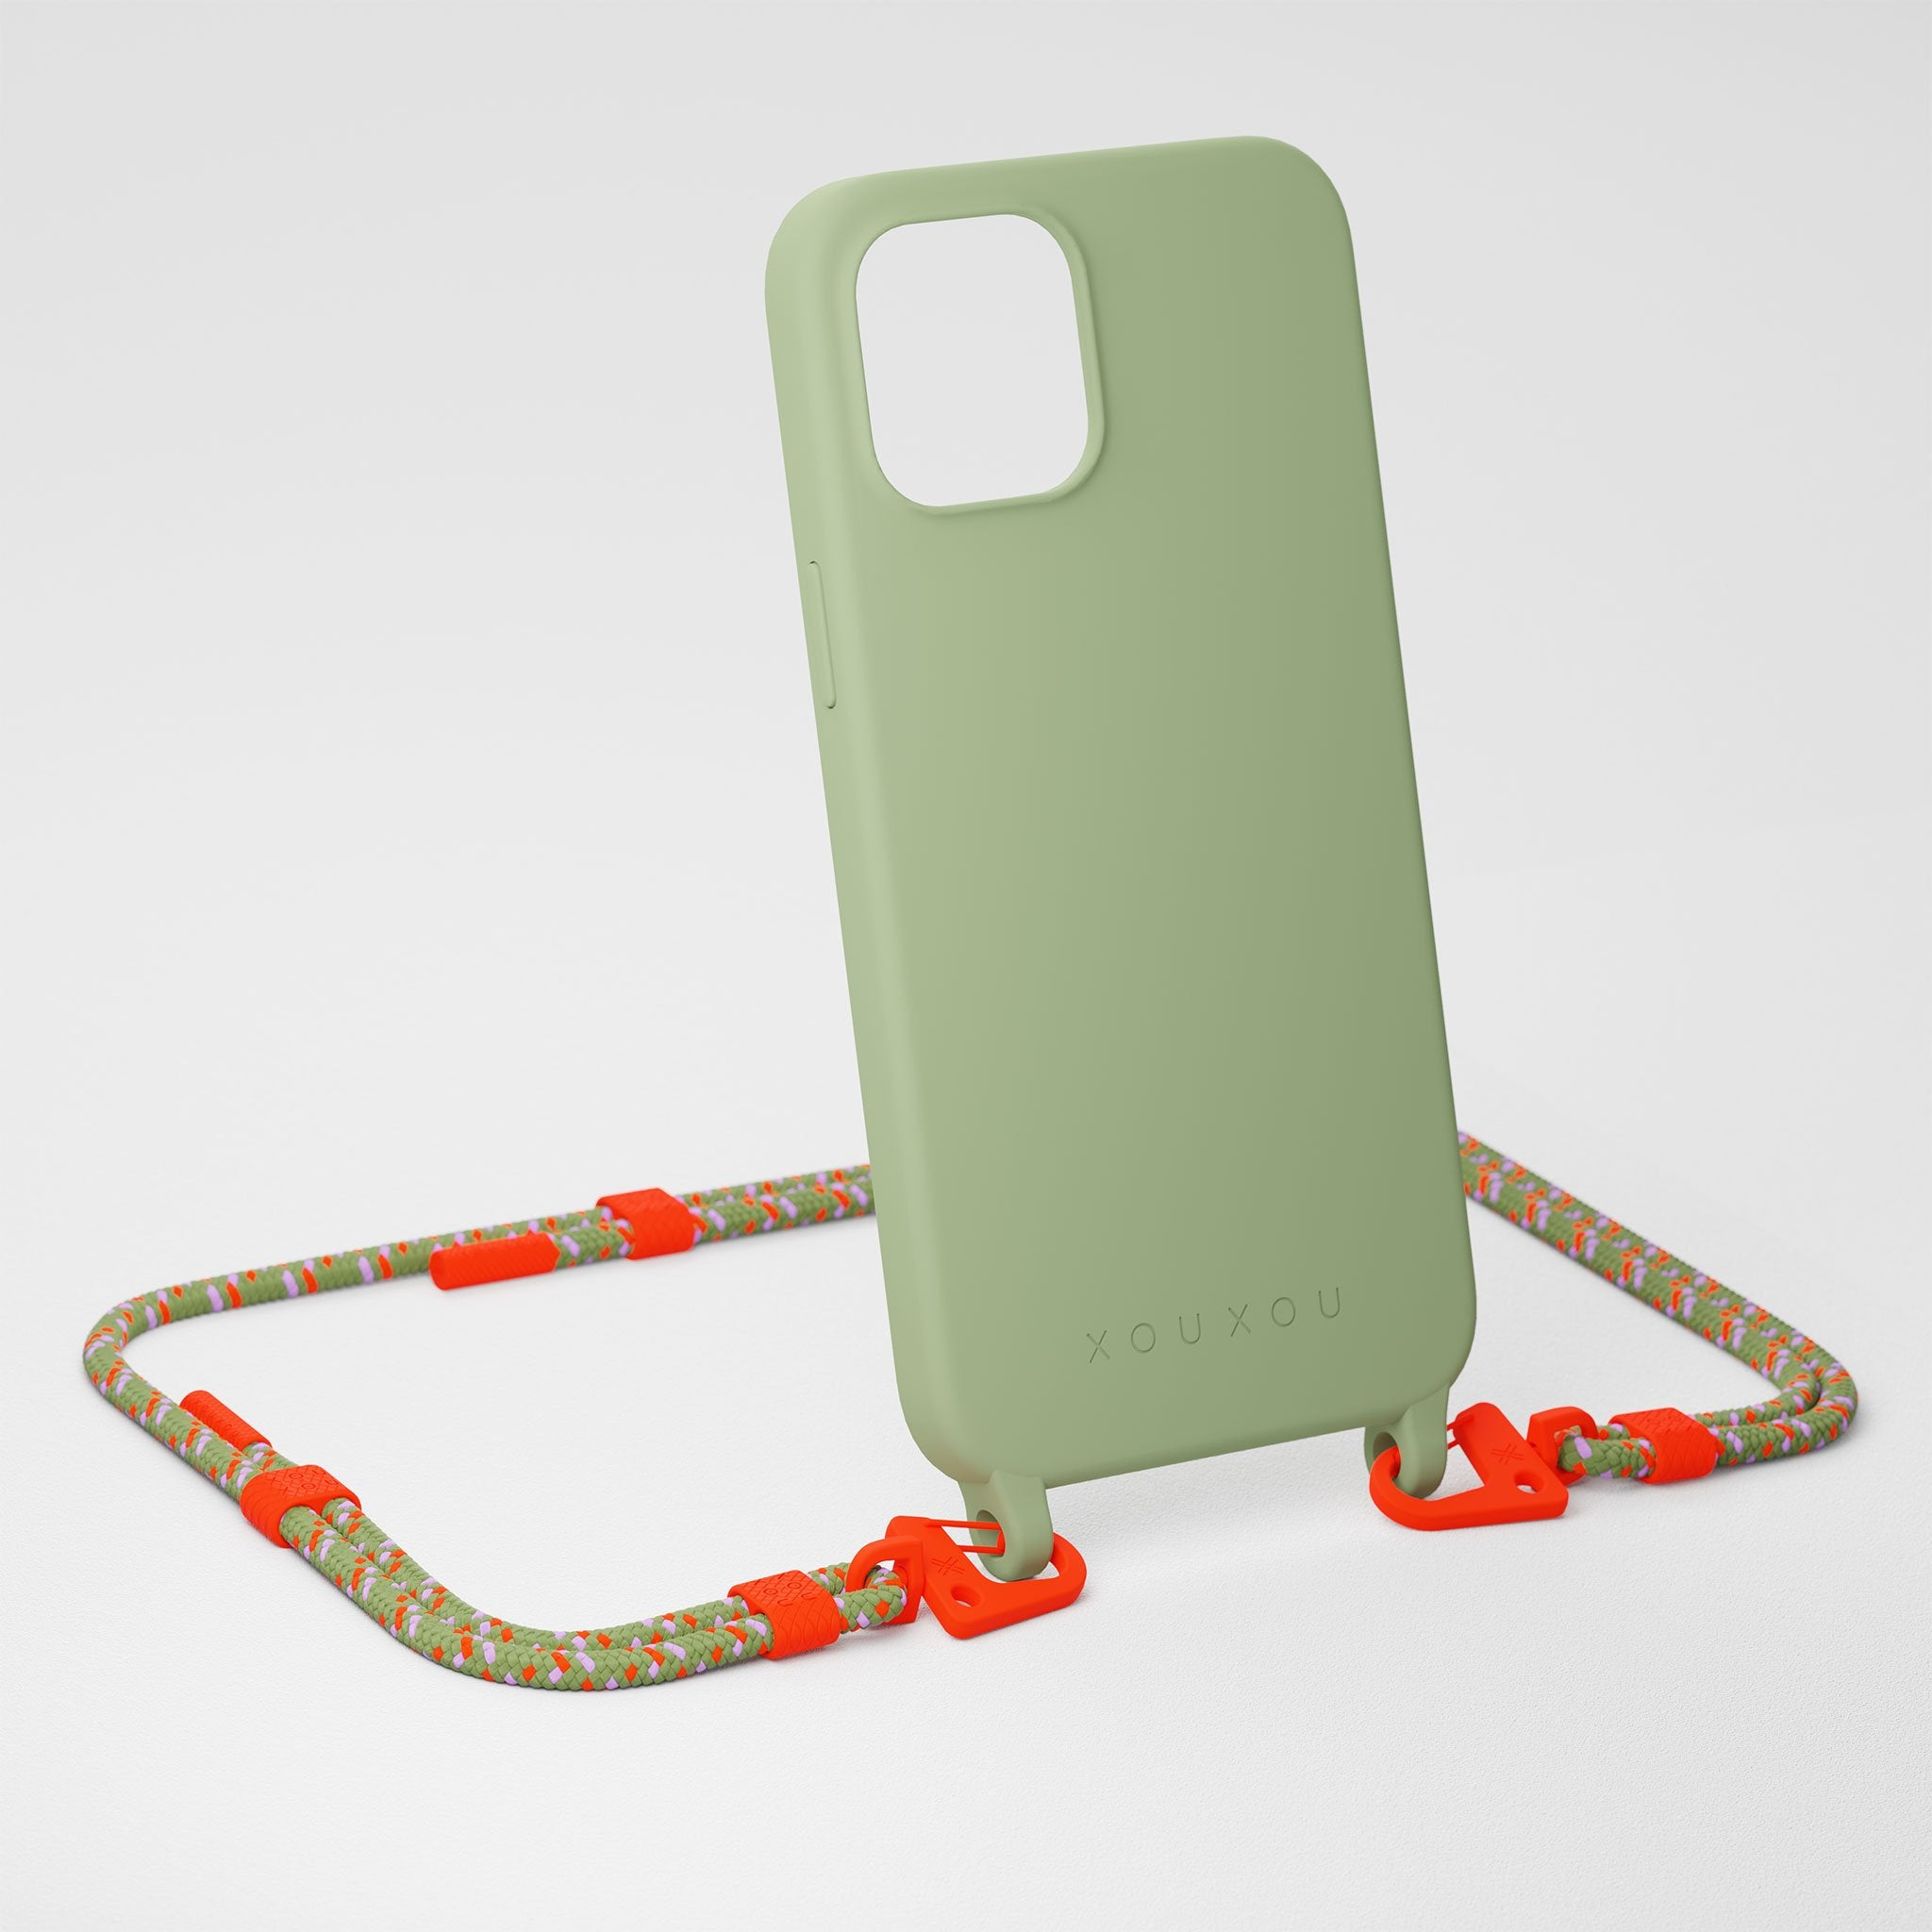 Light Olive Silicone Case + Orange Camouflage Carabiner Rope